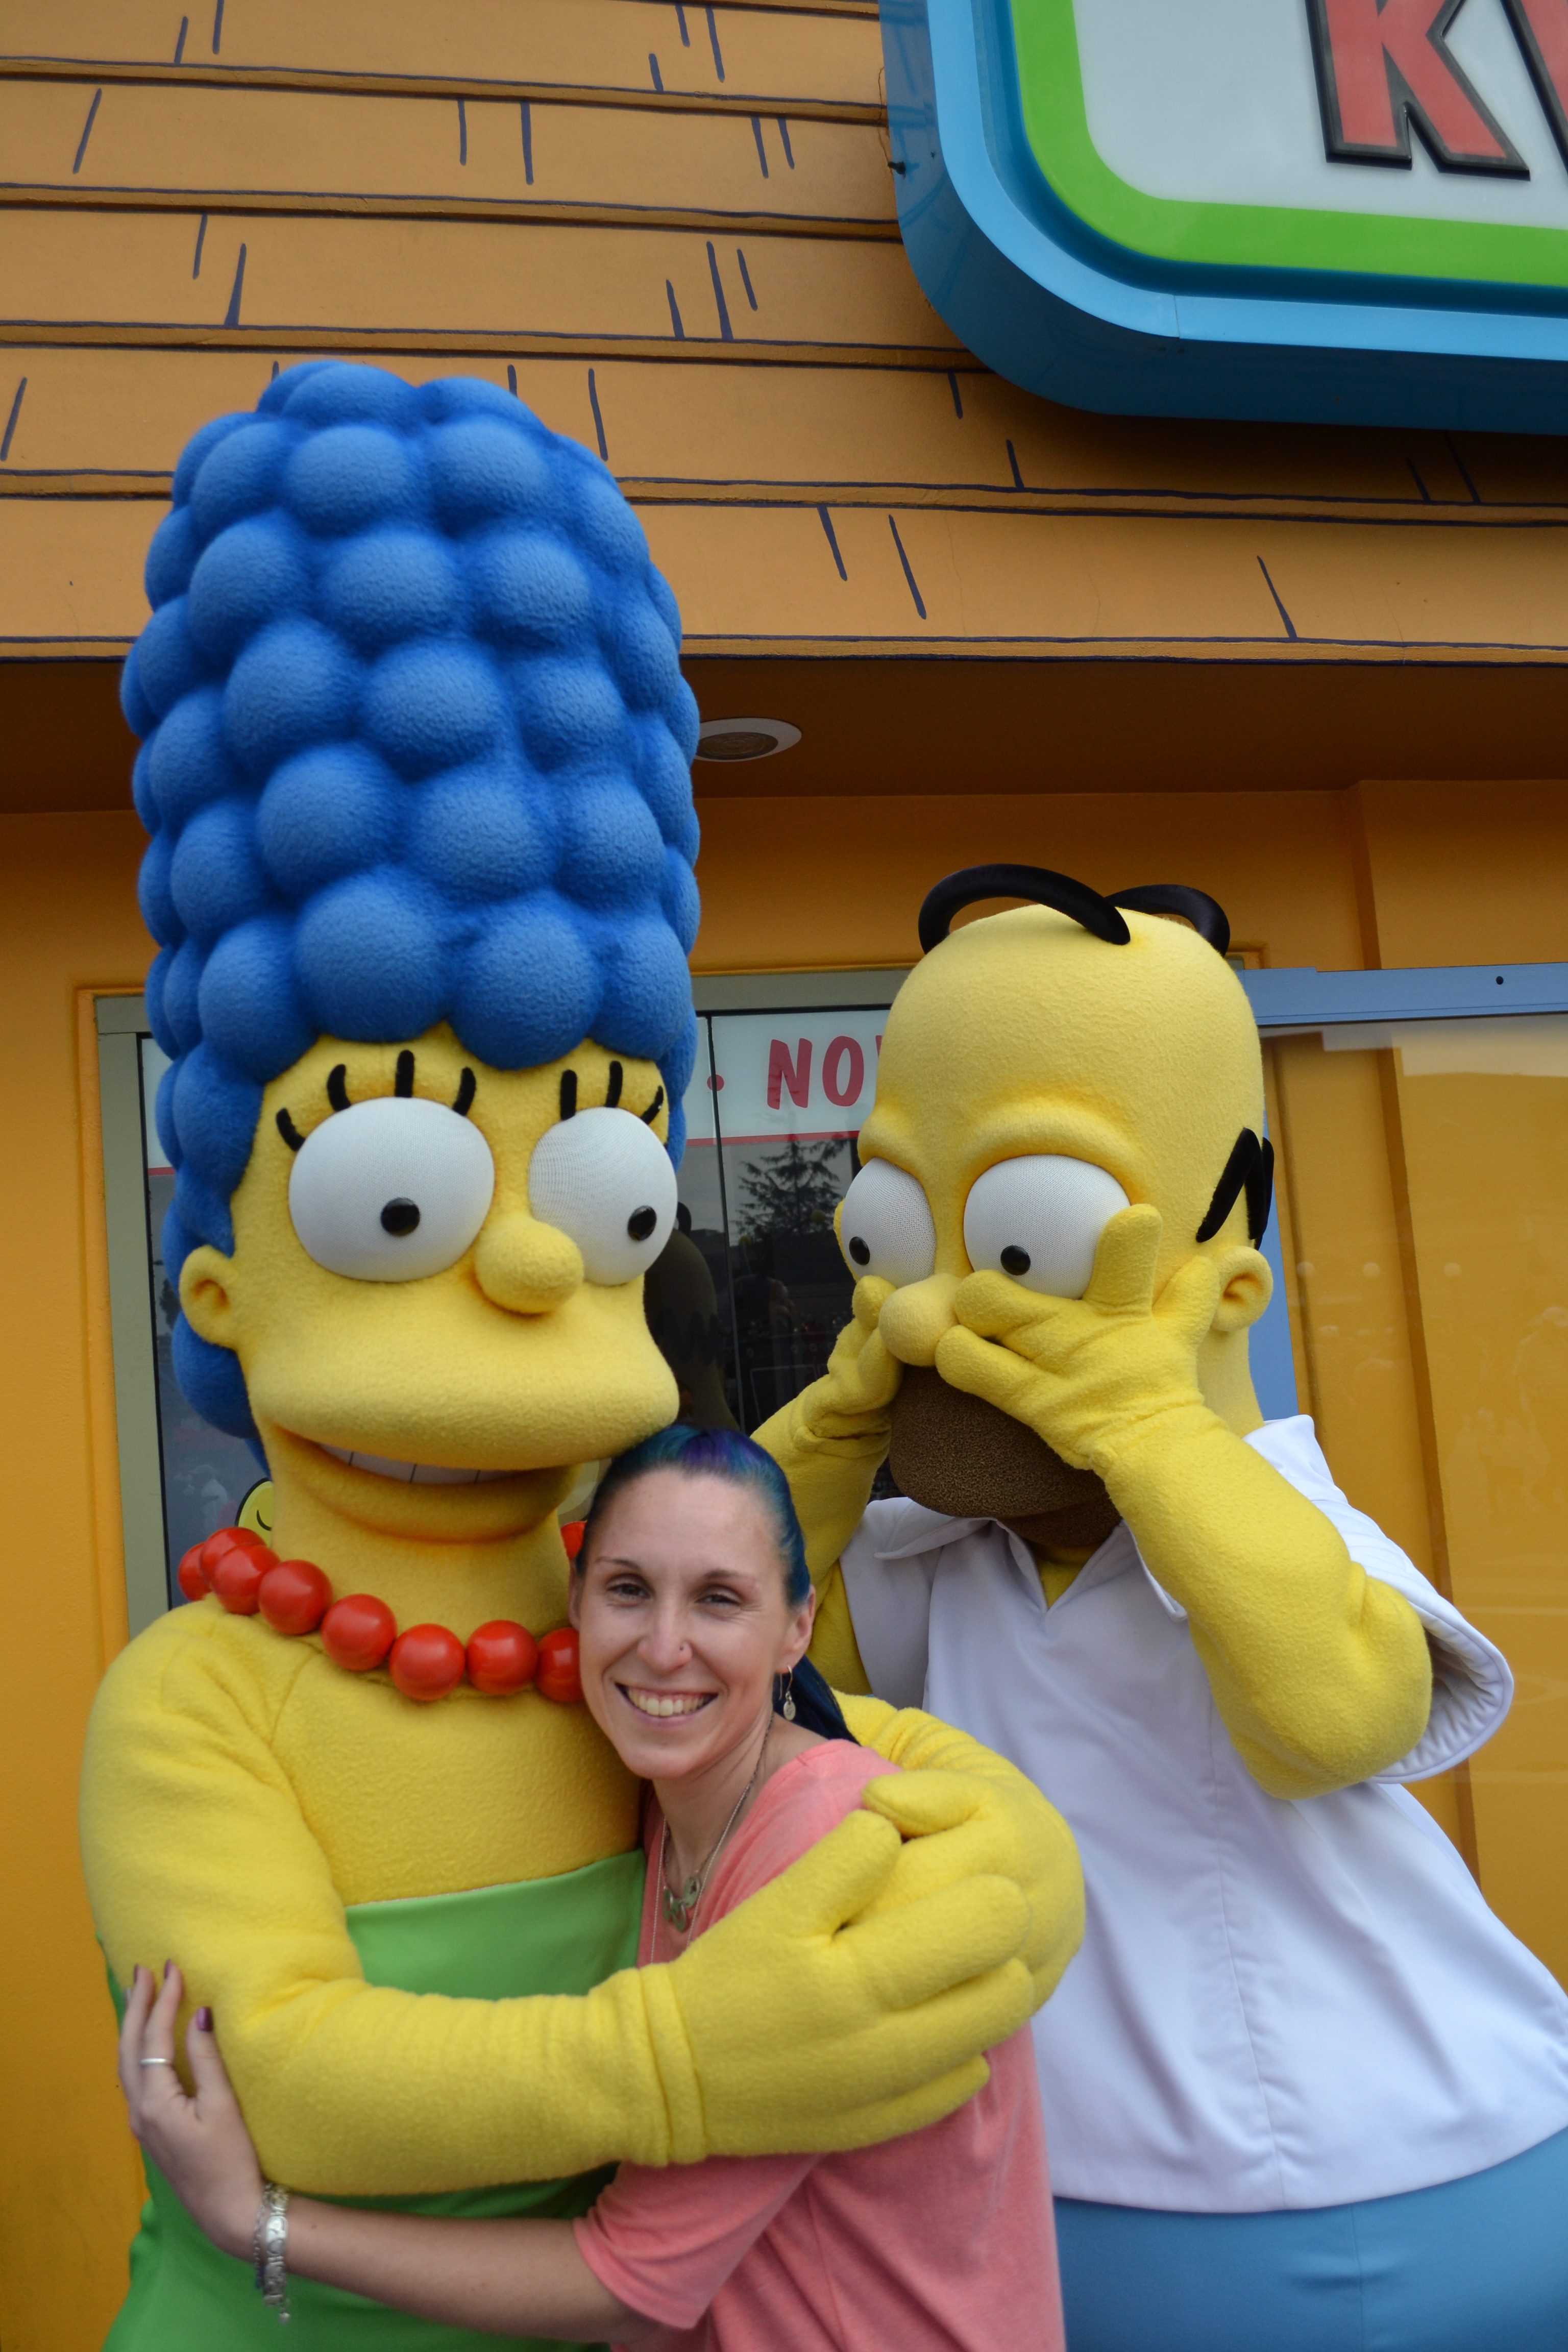 Escort posing with Marge and Homer Simpson at Universal Studios.